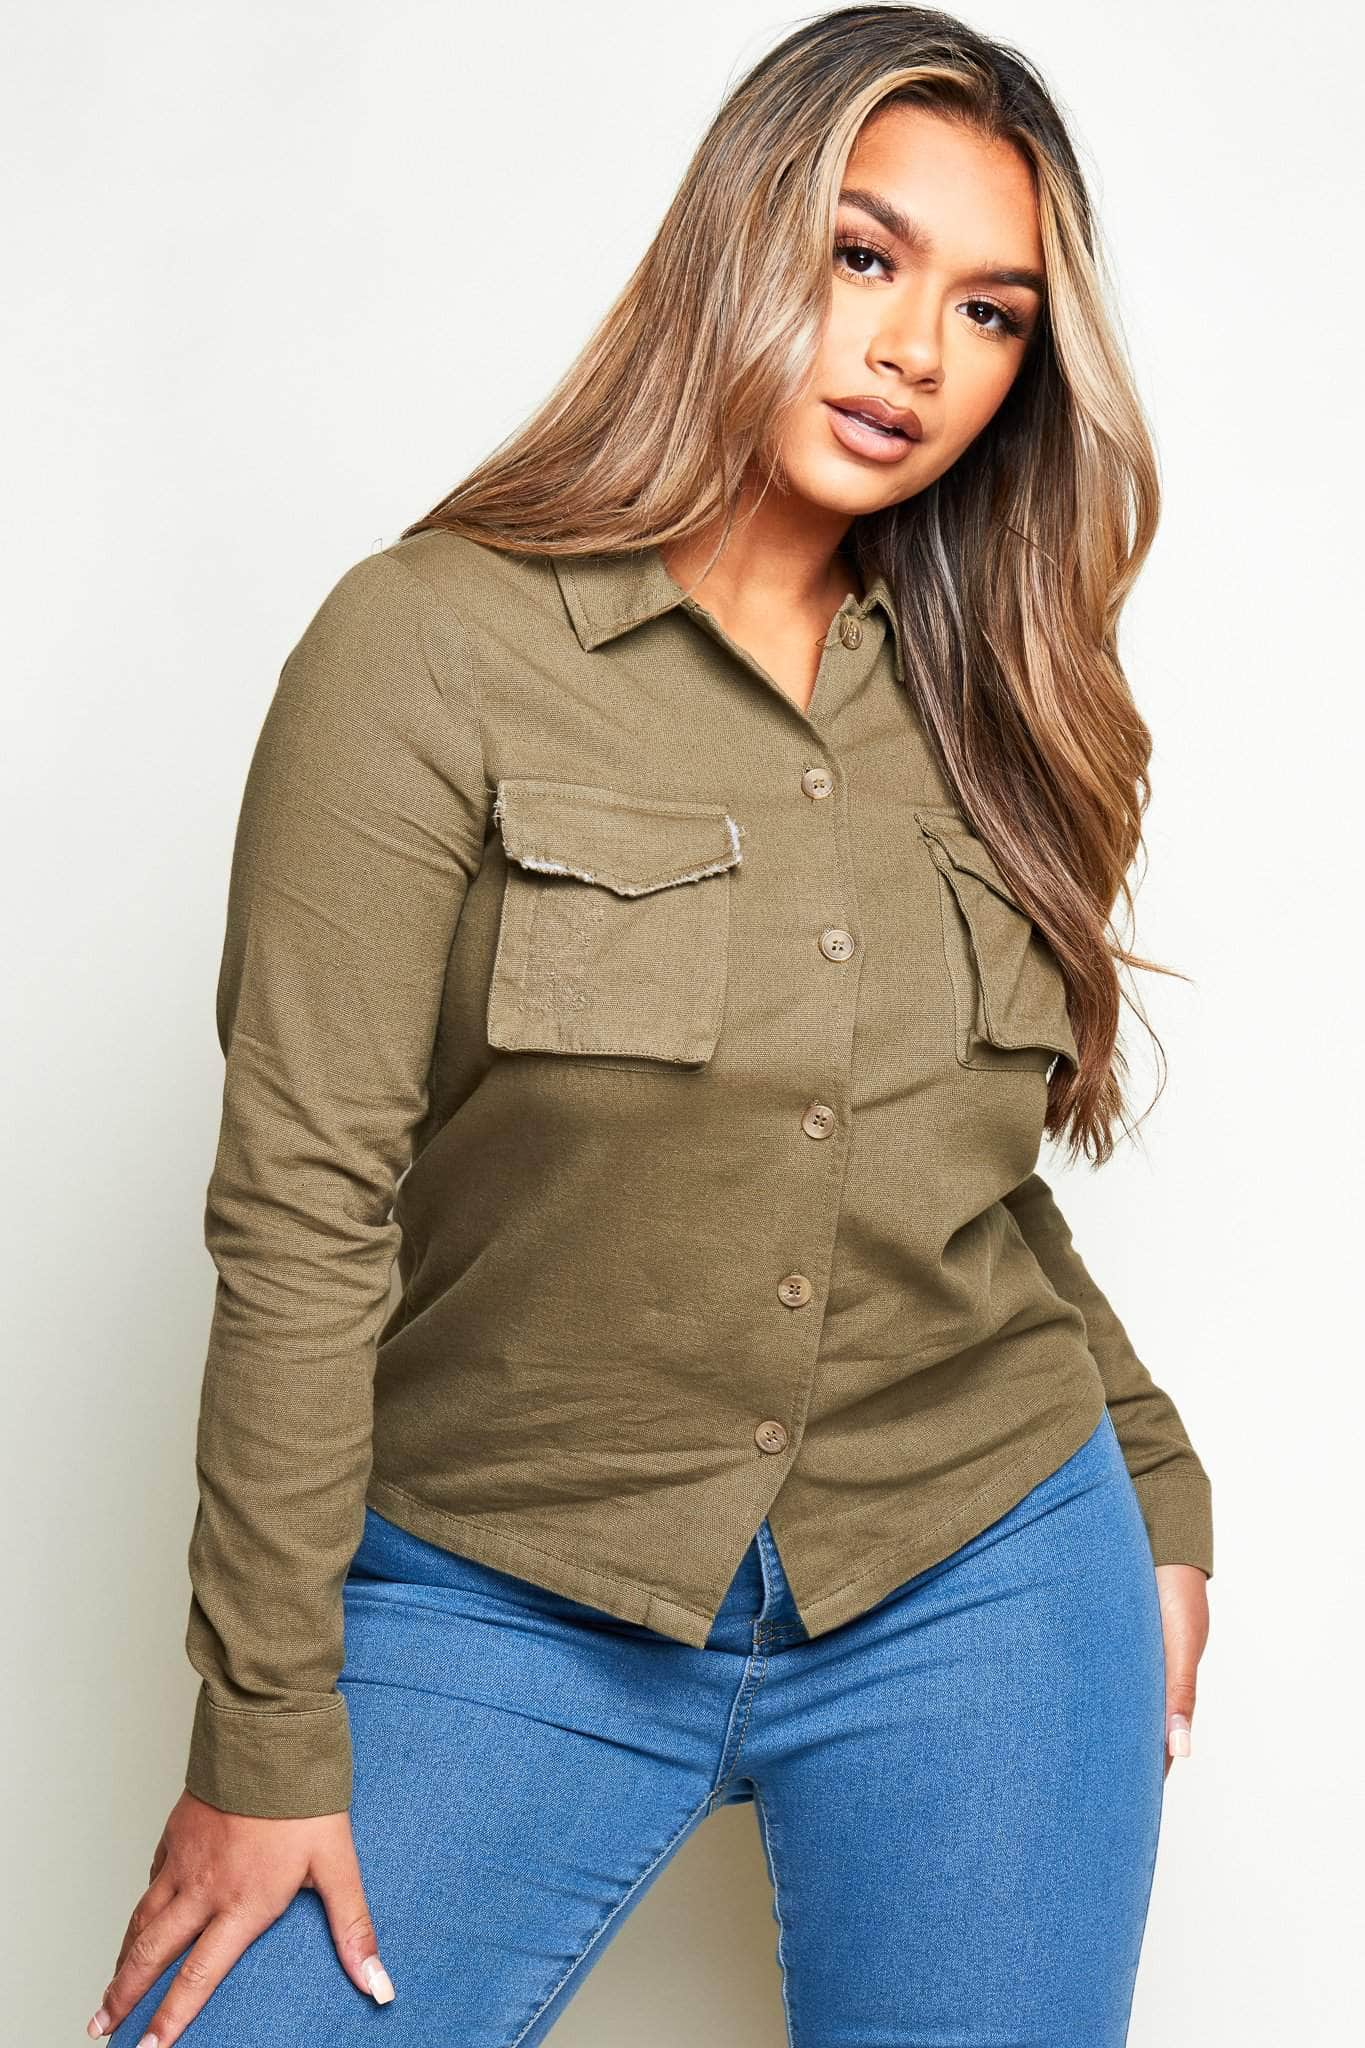 Khaki 100% Cotton Utility Shirt